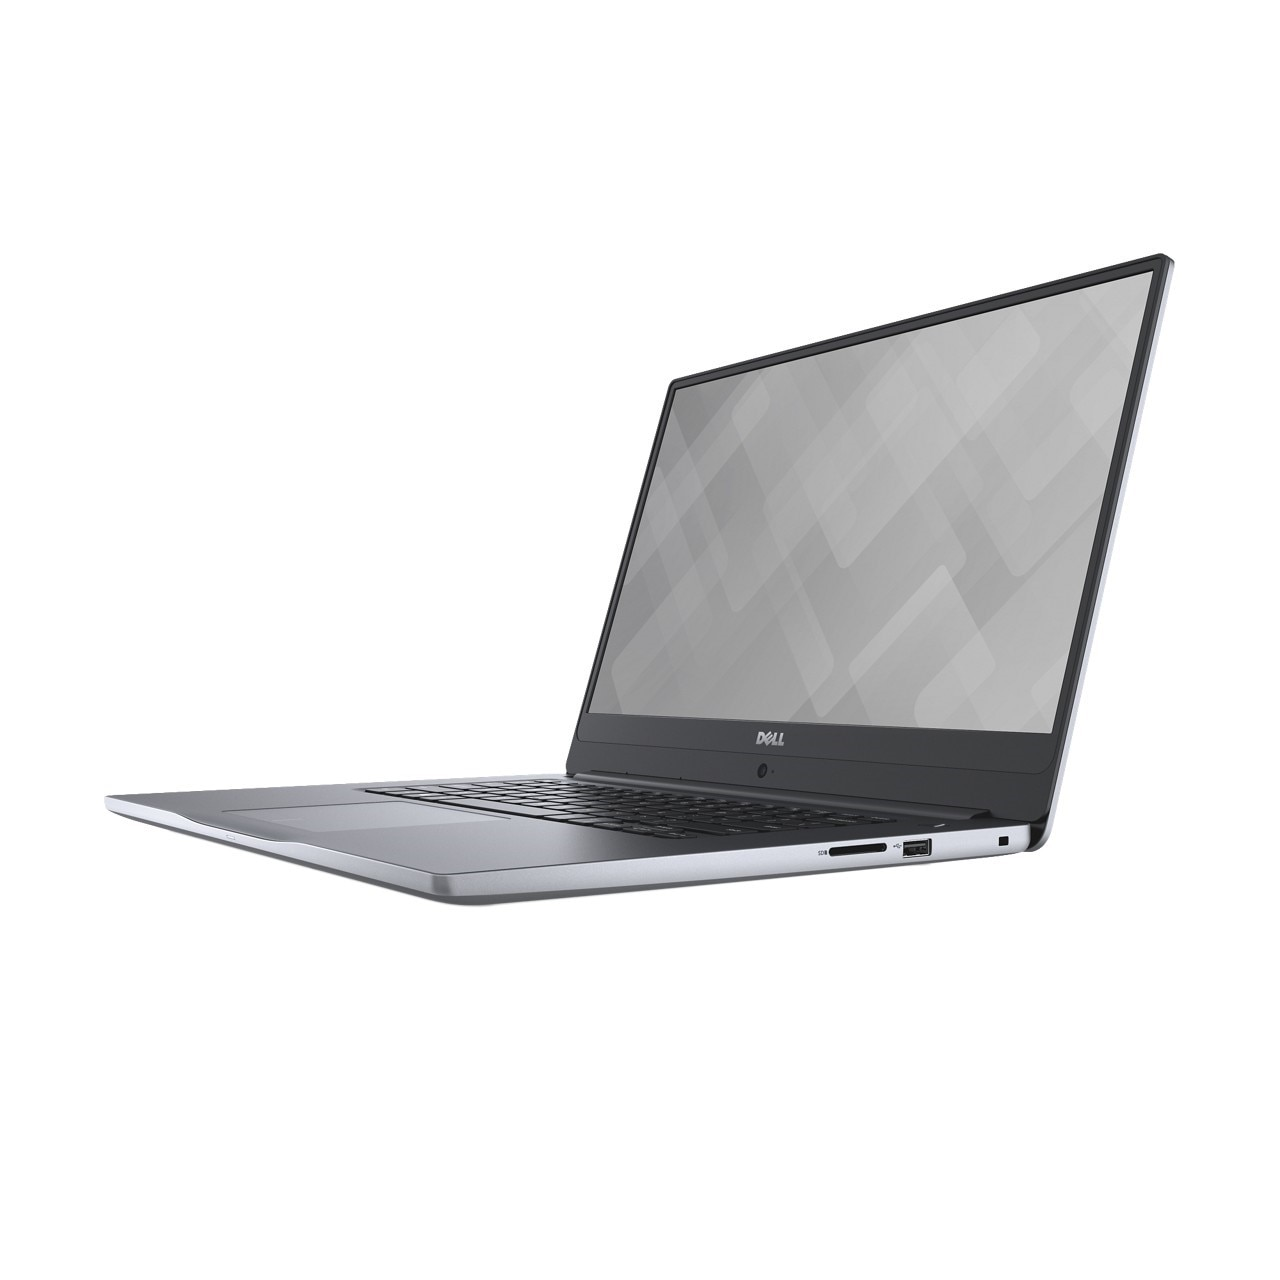 Dell Official Outlet Refurbished Overstock Laptops Desktops Inspiron 15 7567 I5 7300hq 4gb Ddr4 Gtx 1050 Ti Win10 Black 7000 7560